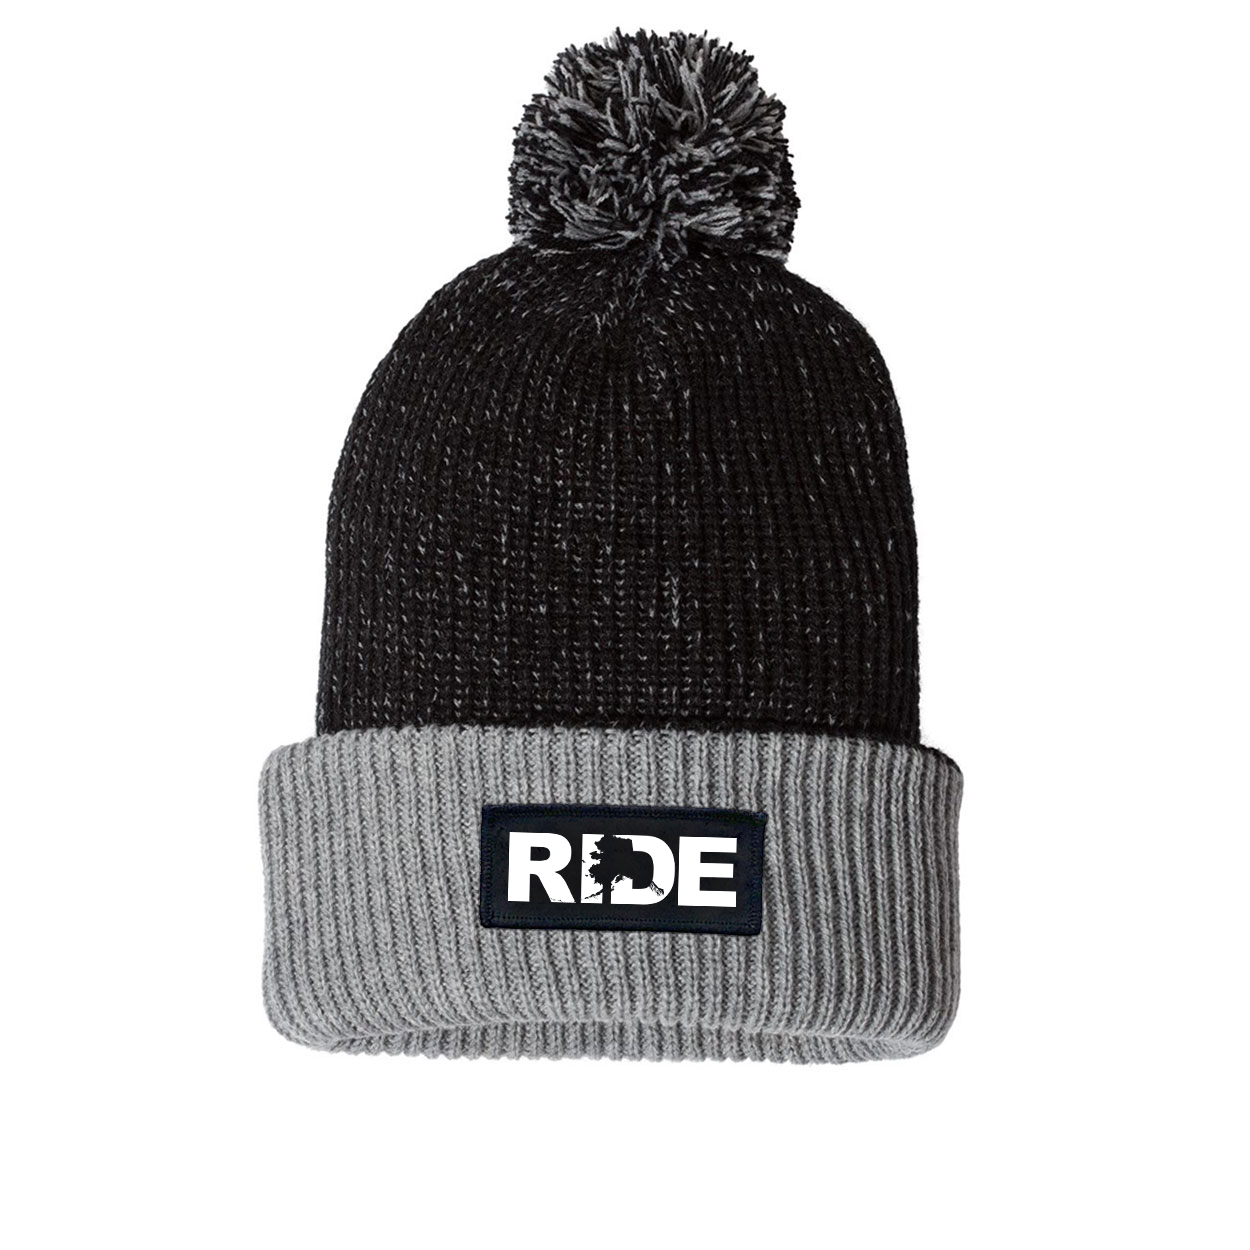 Ride Alaska Night Out Woven Patch Roll Up Pom Knit Beanie Black/Gray (White Logo)